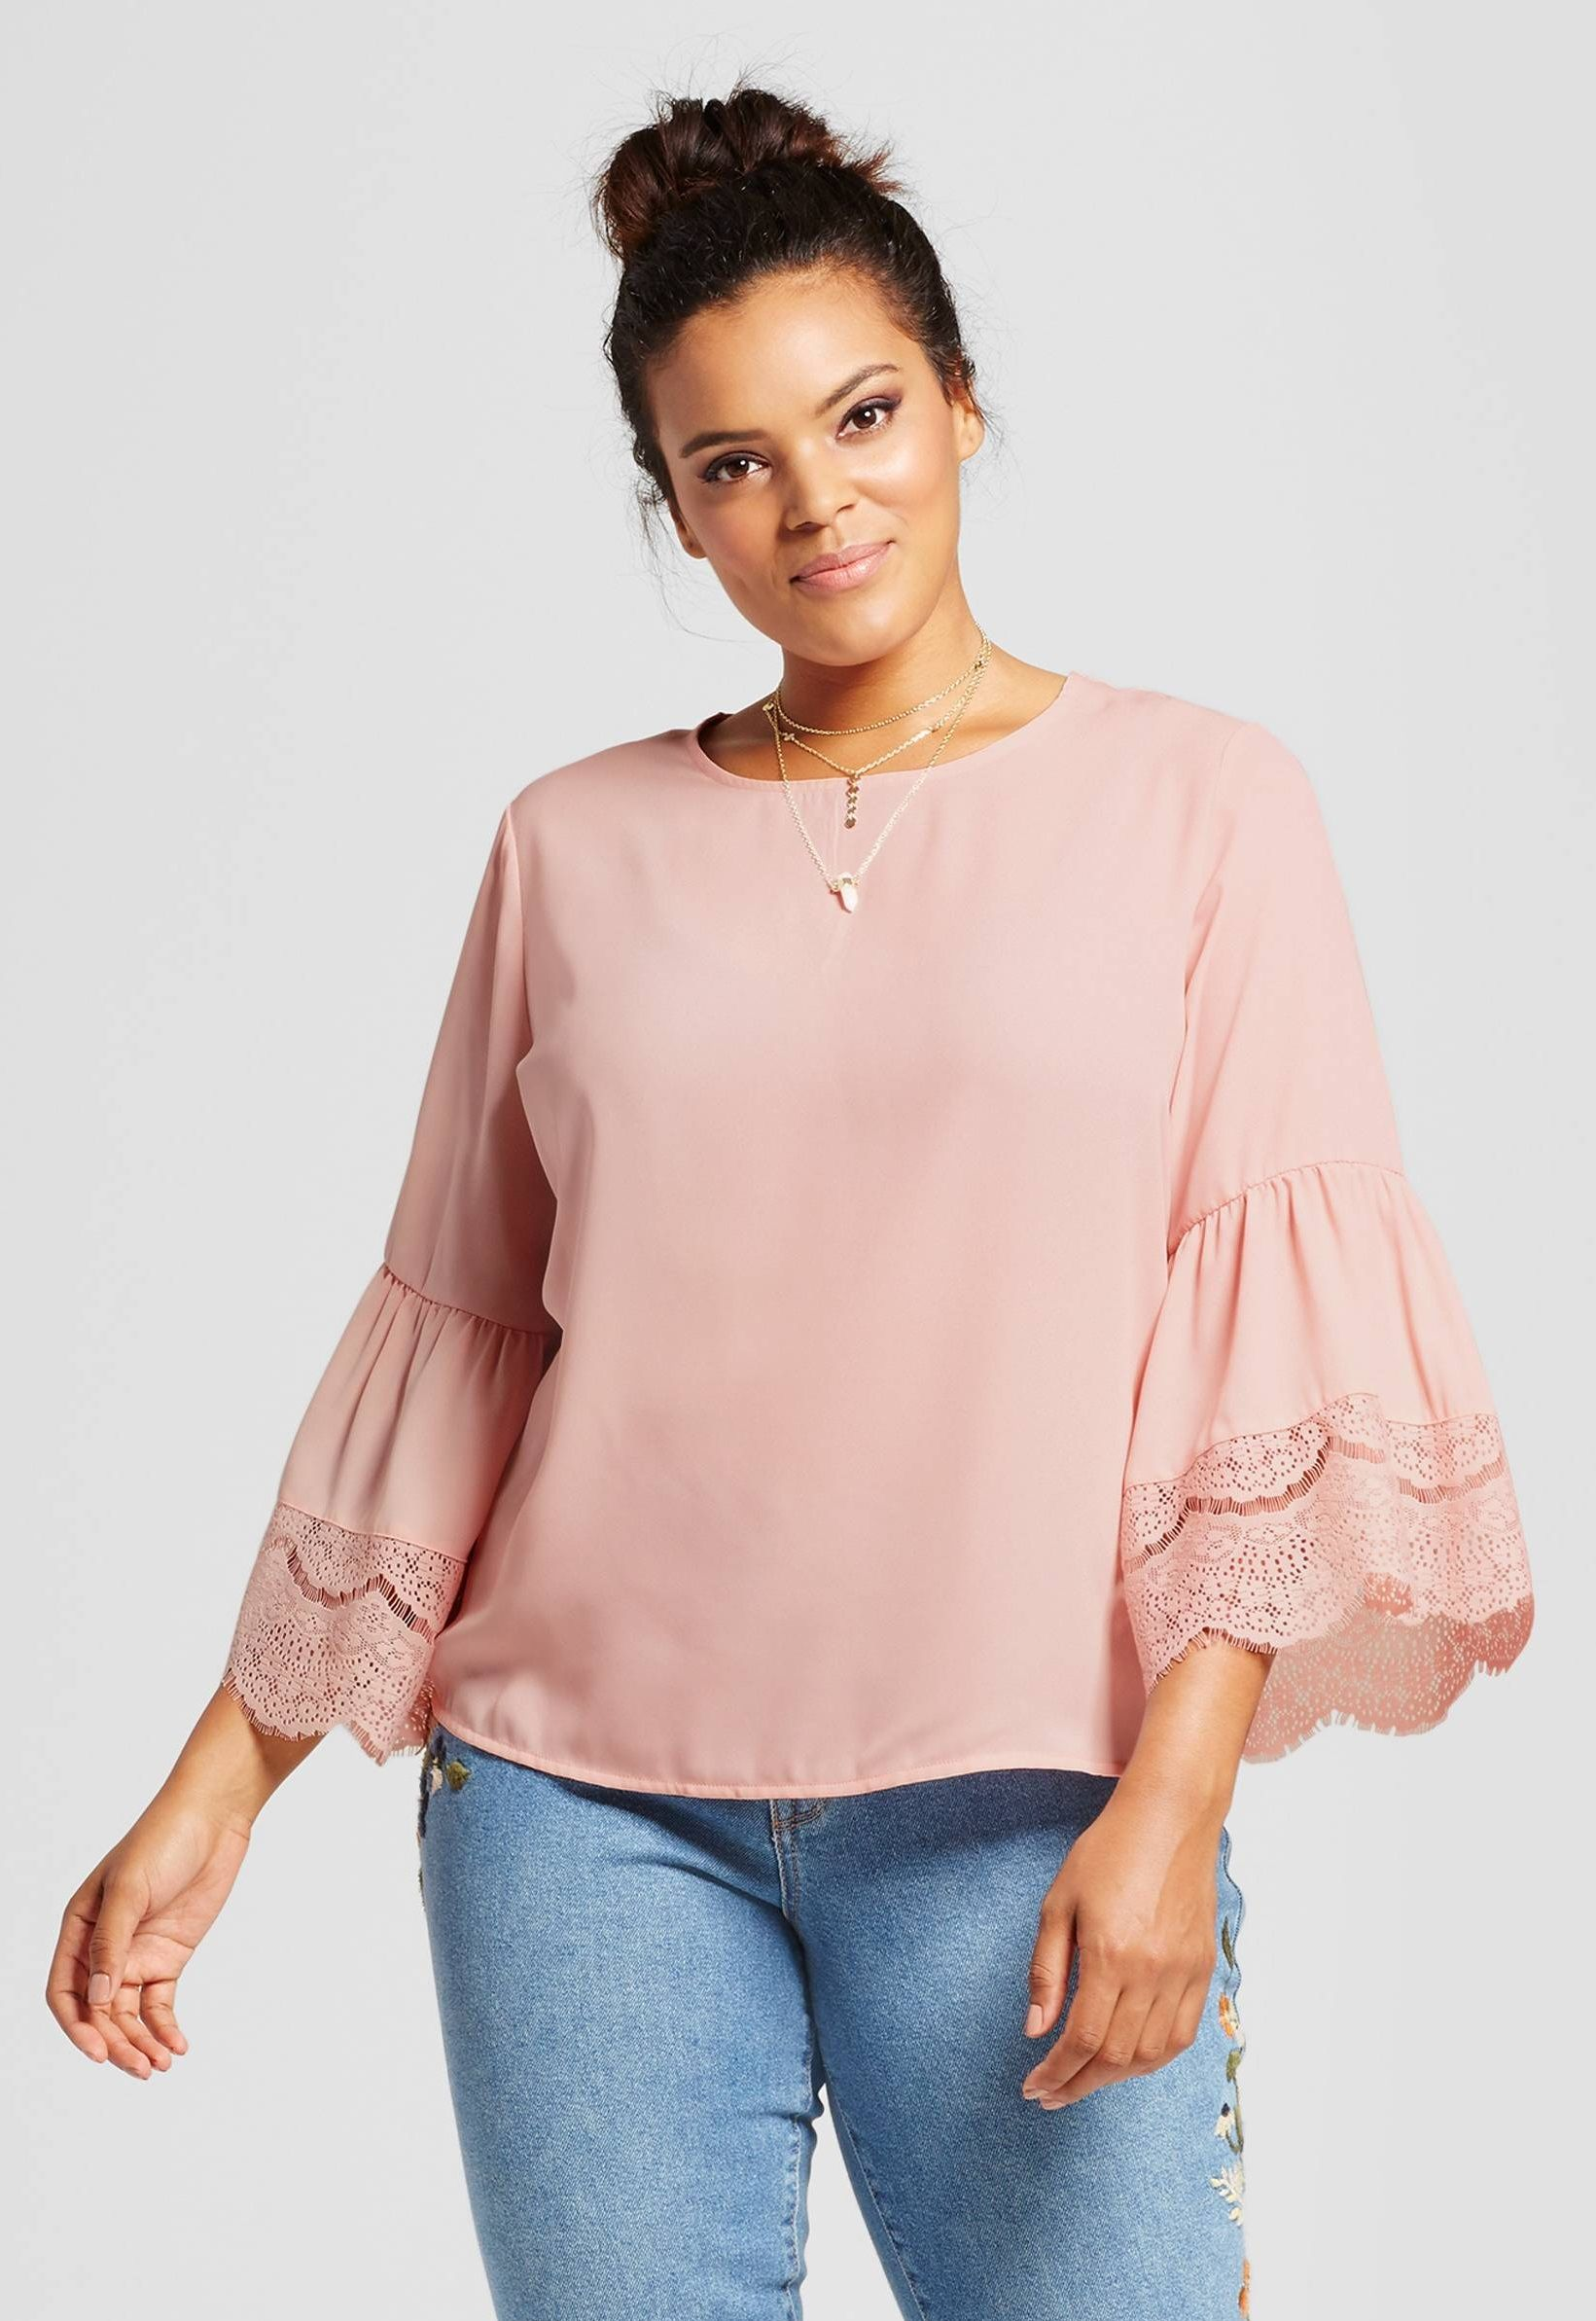 967f506e816b88 Plus Size Lace Bell Sleeve Blouse | Outfits in 2019 | Plus size ...